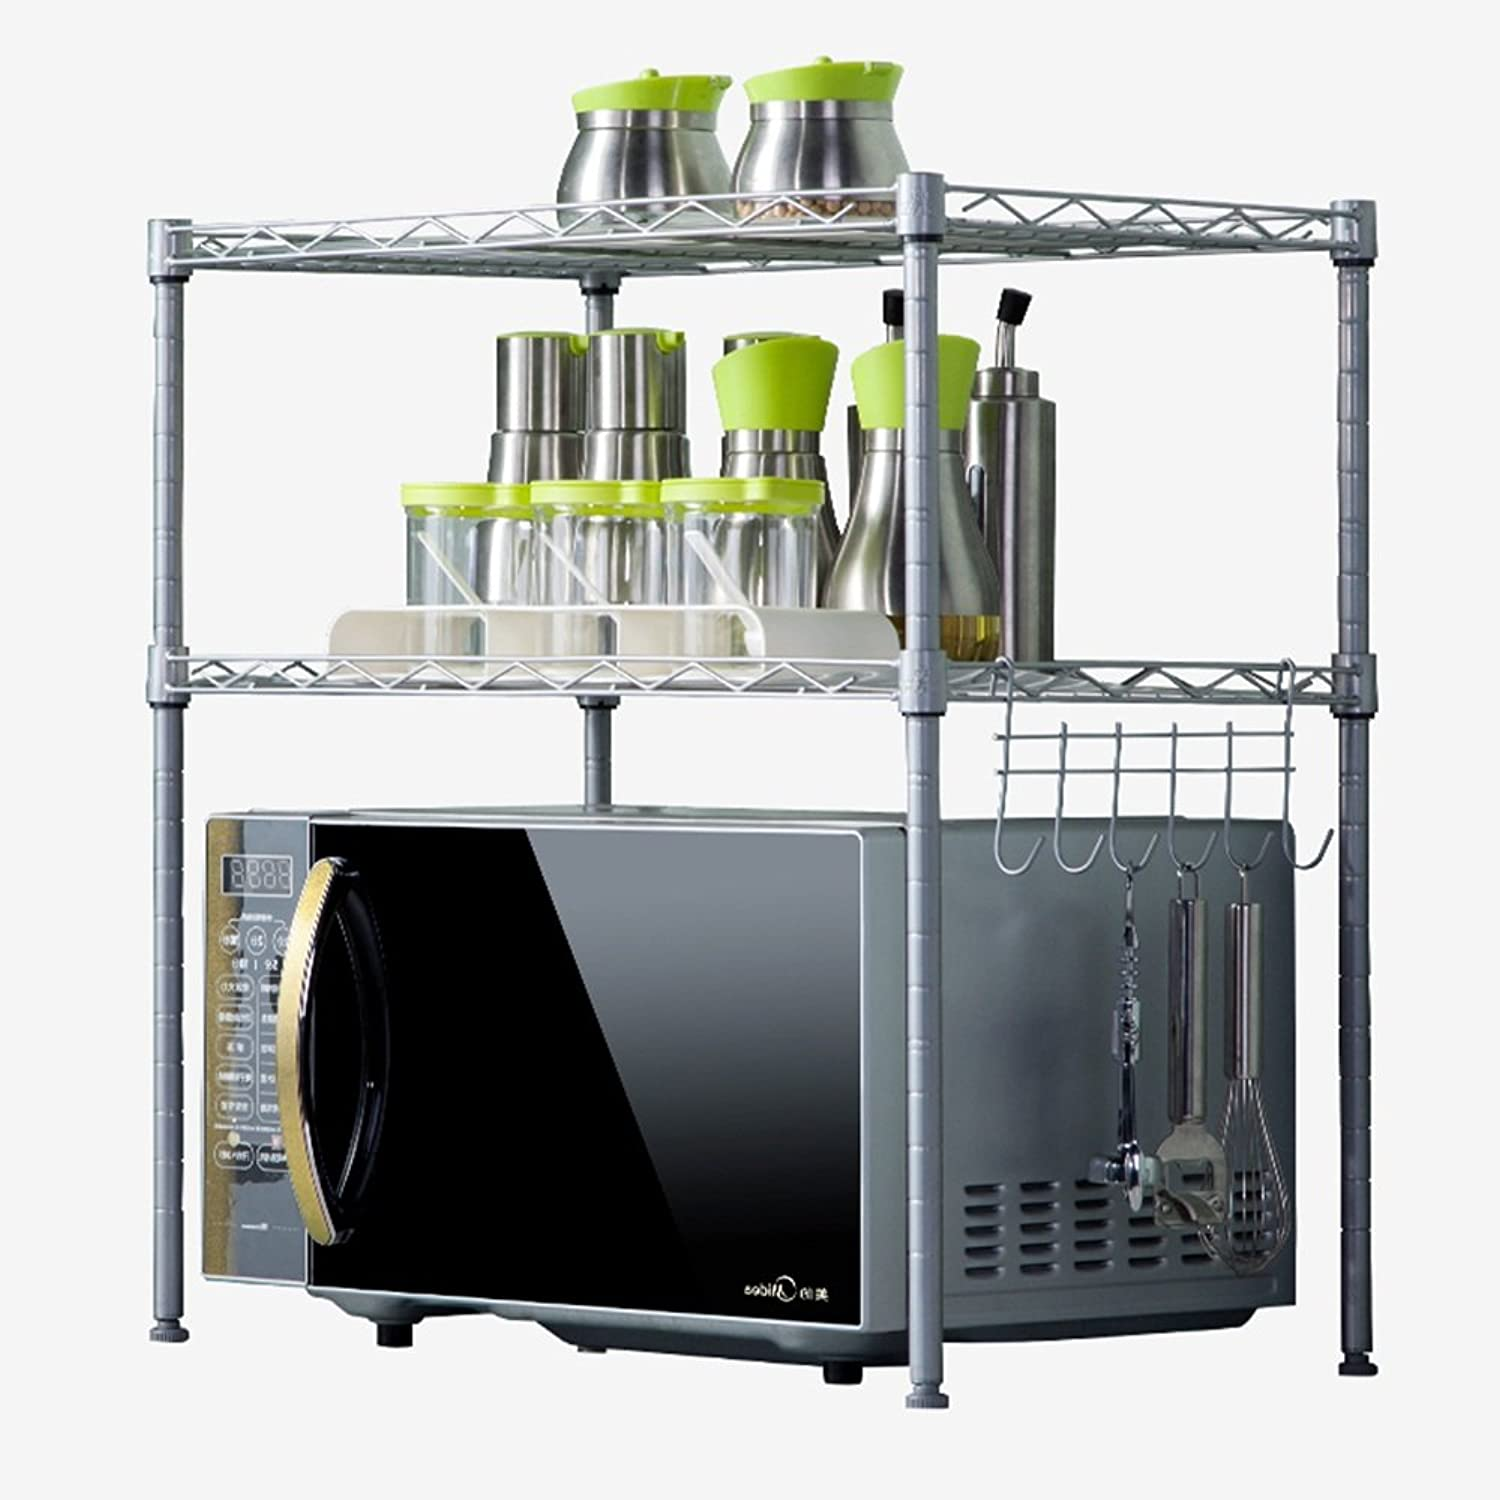 PeaceipUS Household Shelves, Metal Kitchen Living Room Seasoning Storage Oven Microwave Oven Shelf, 54  34  58cm (color   Silver)